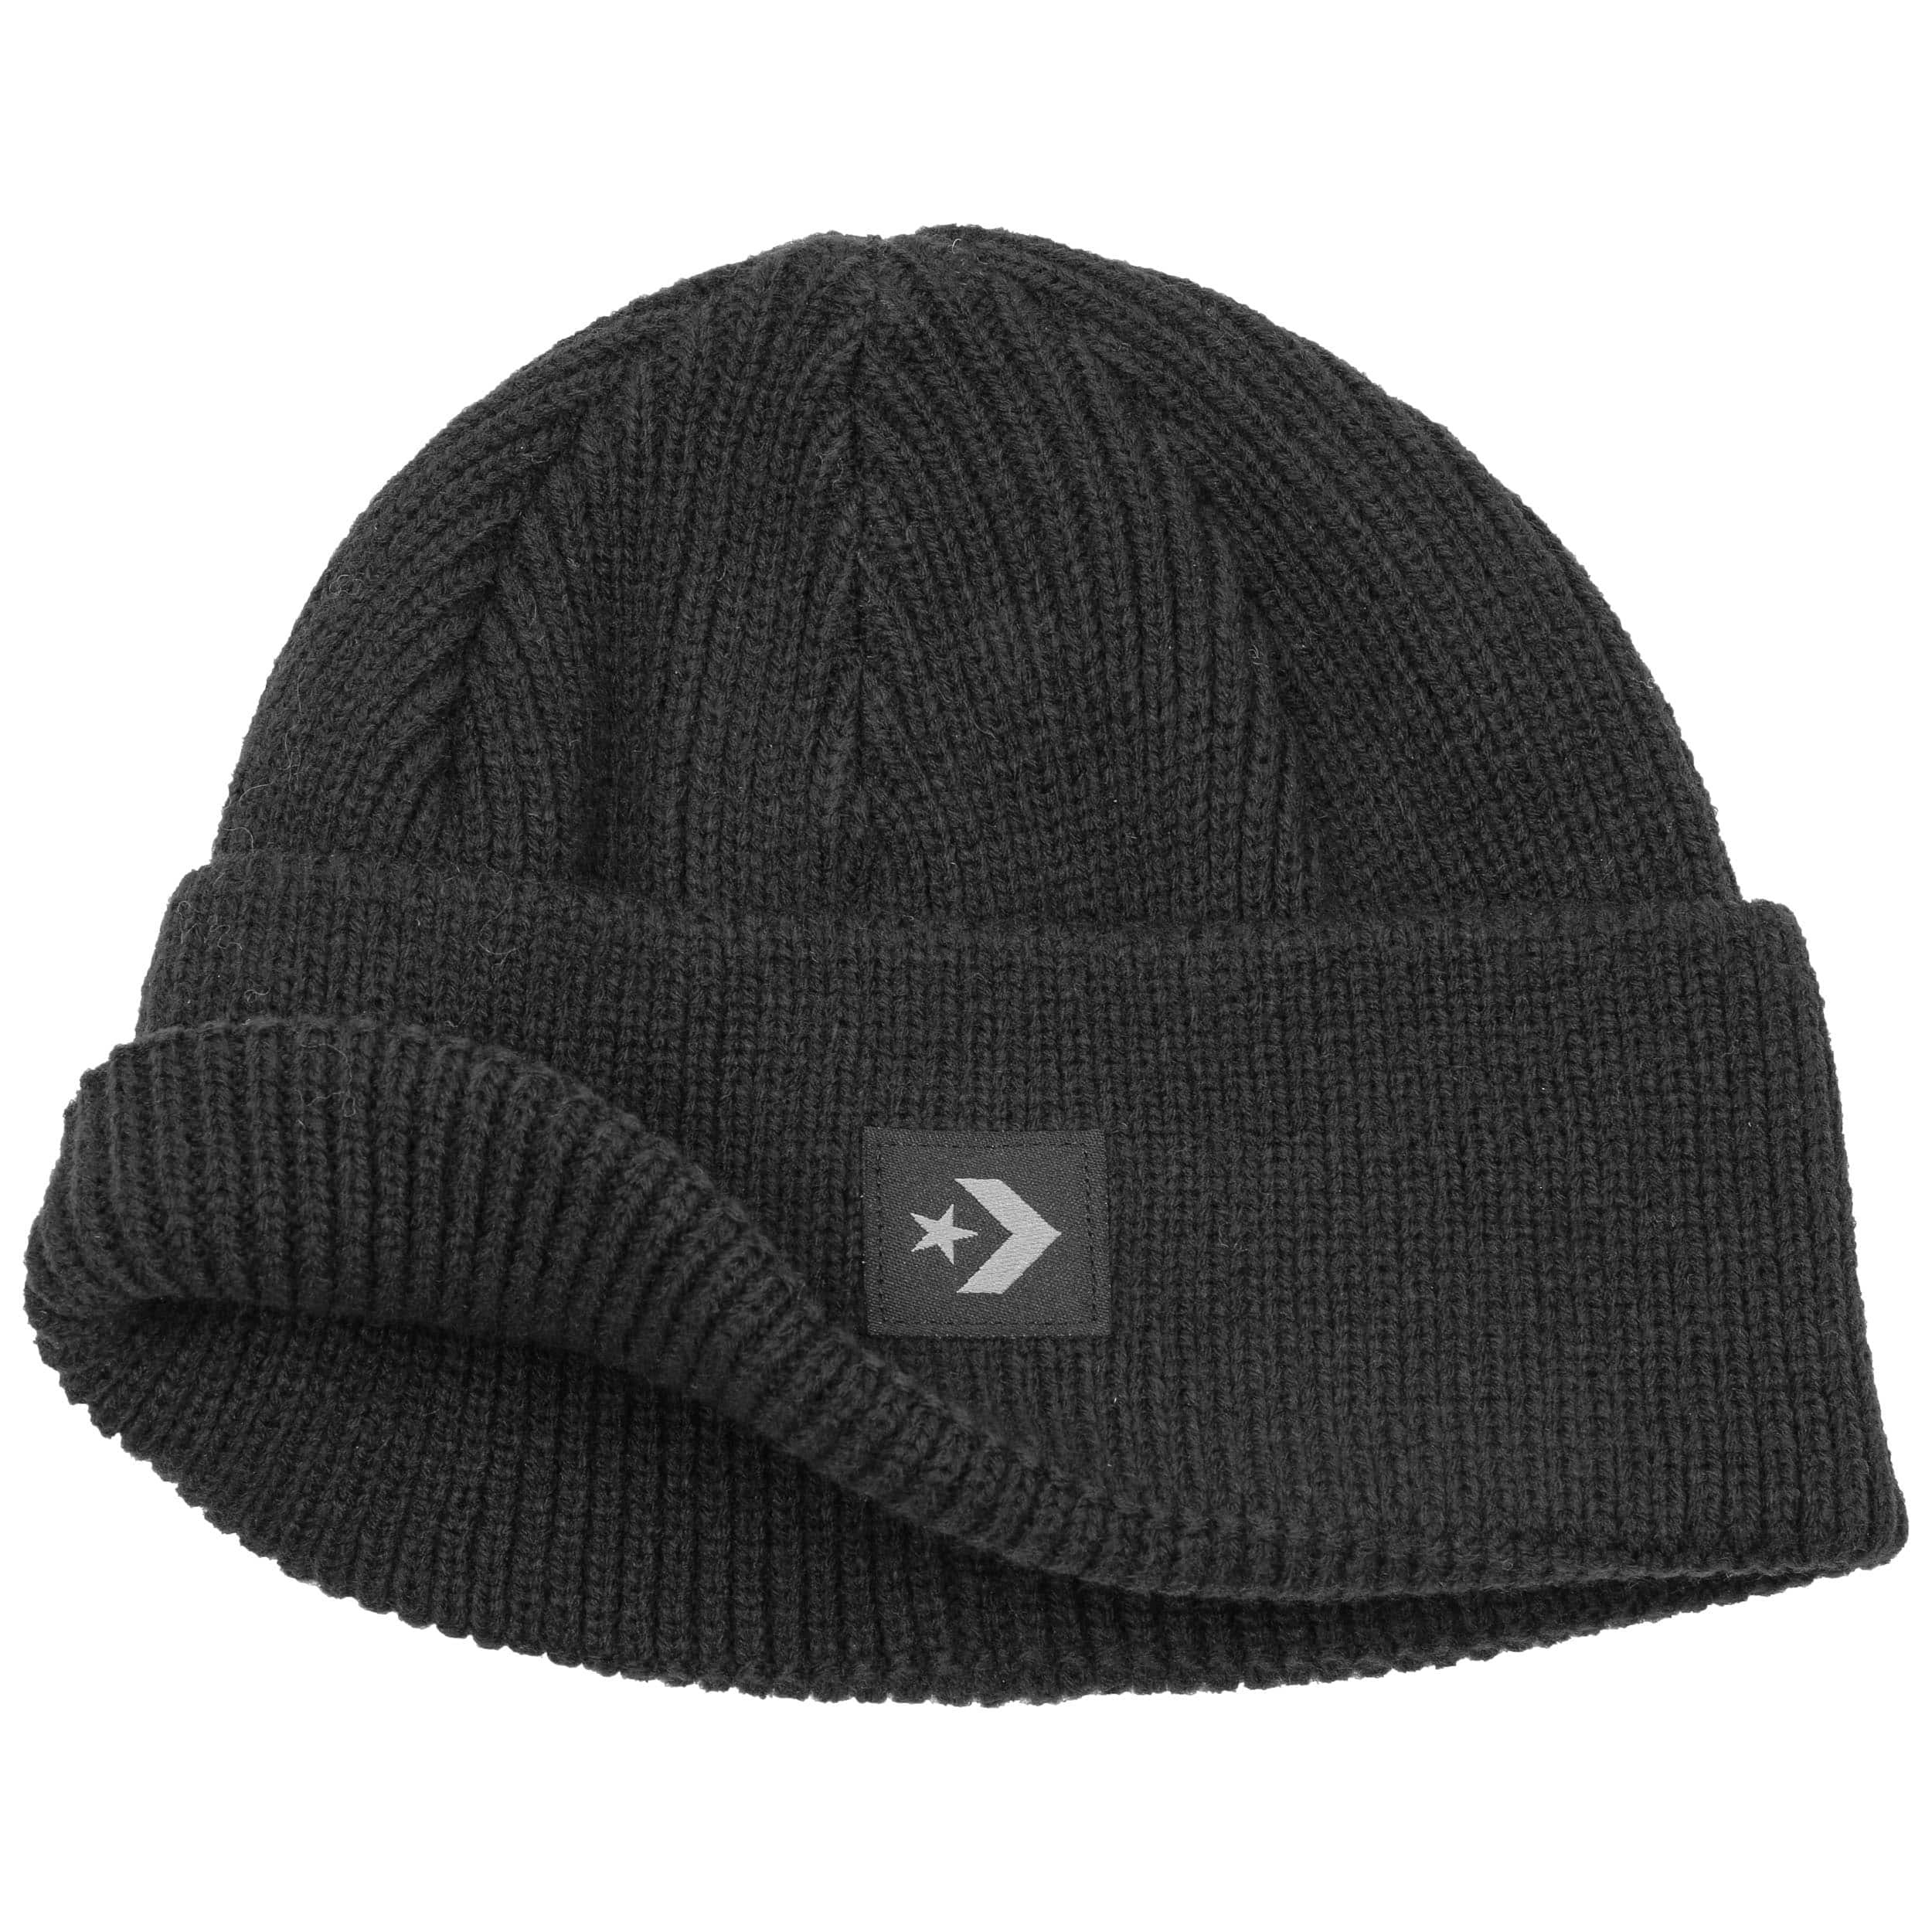 f81e27cf1b2 ... Star Chevron Beanie with Cuff by Converse - olive 2 ...